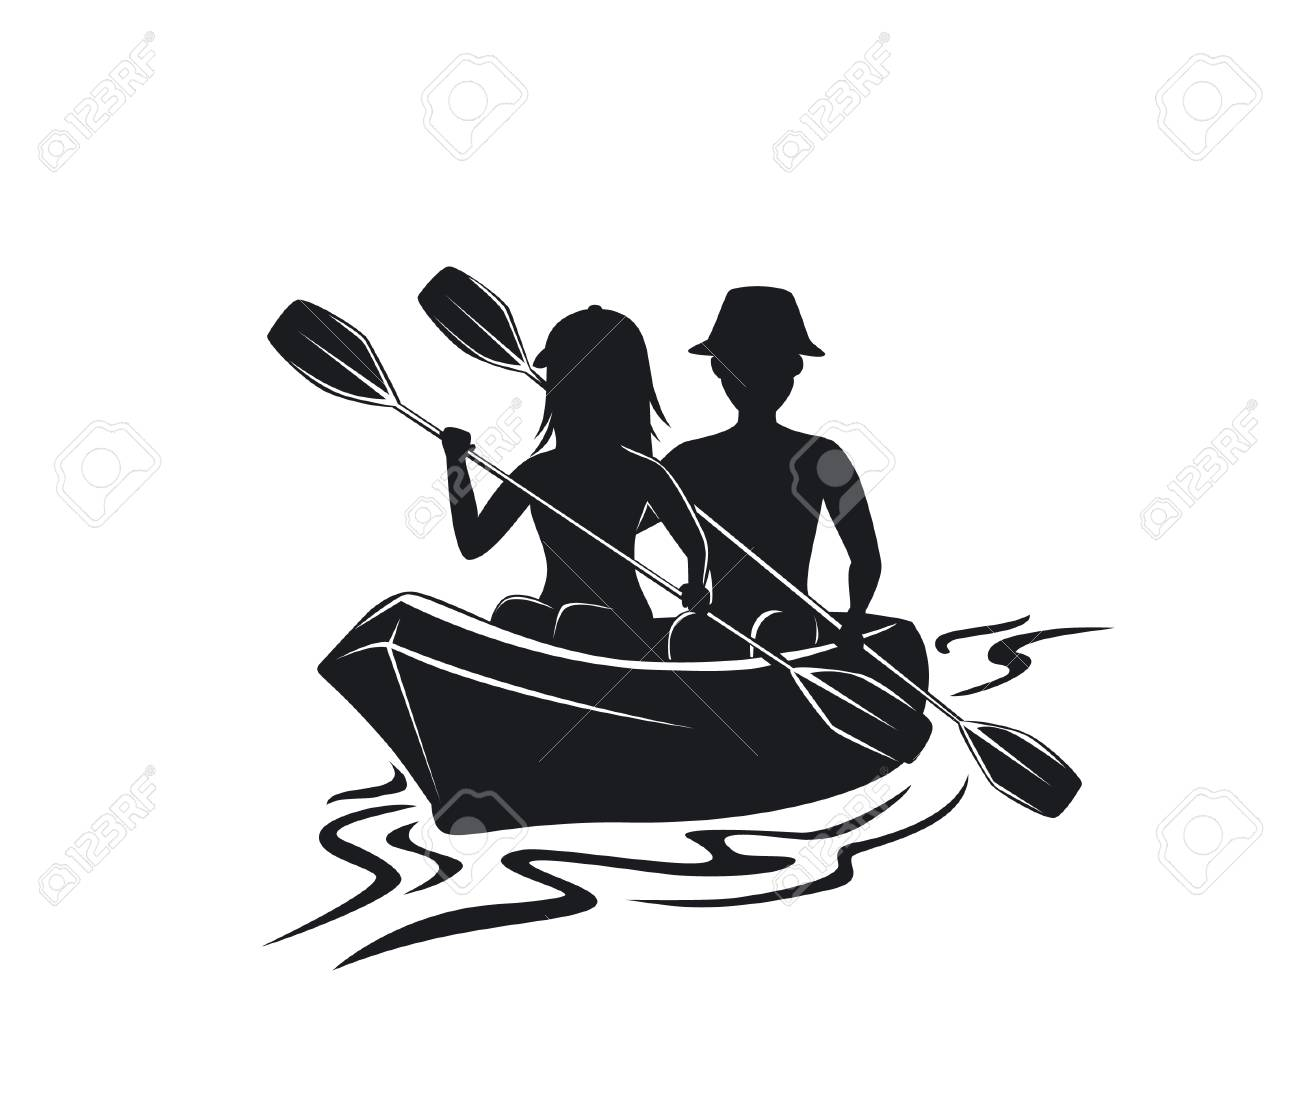 Man And Woman Kayaking Silhouette Front View Isolated Vector Illustration Stock